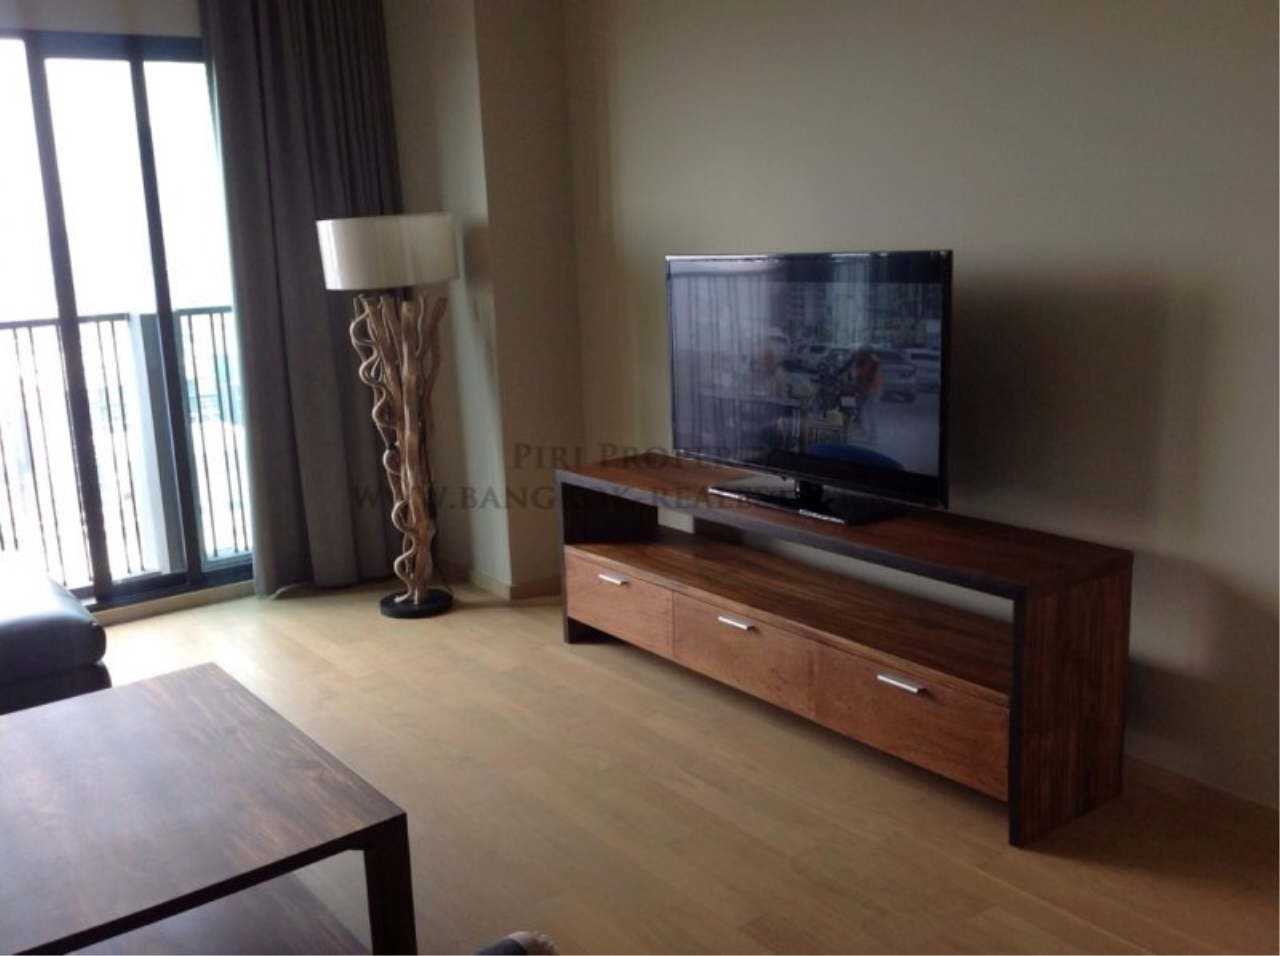 Piri Property Agency's Nicely furnished 2 Bedroom Condo - Noble Reveal - Next to Ekkamai BTS 2